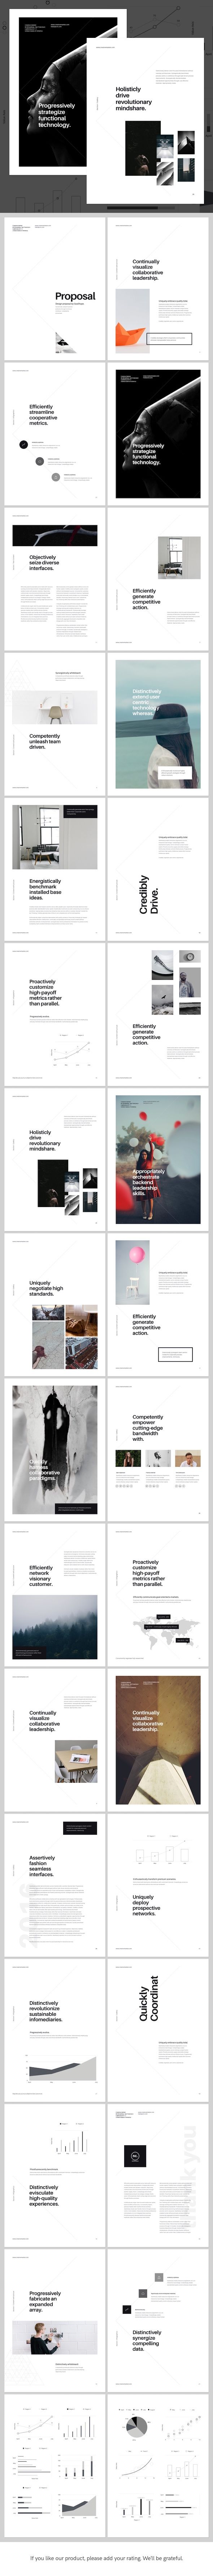 A4 Keynote Presentation for Print - Creative Keynote Templates More